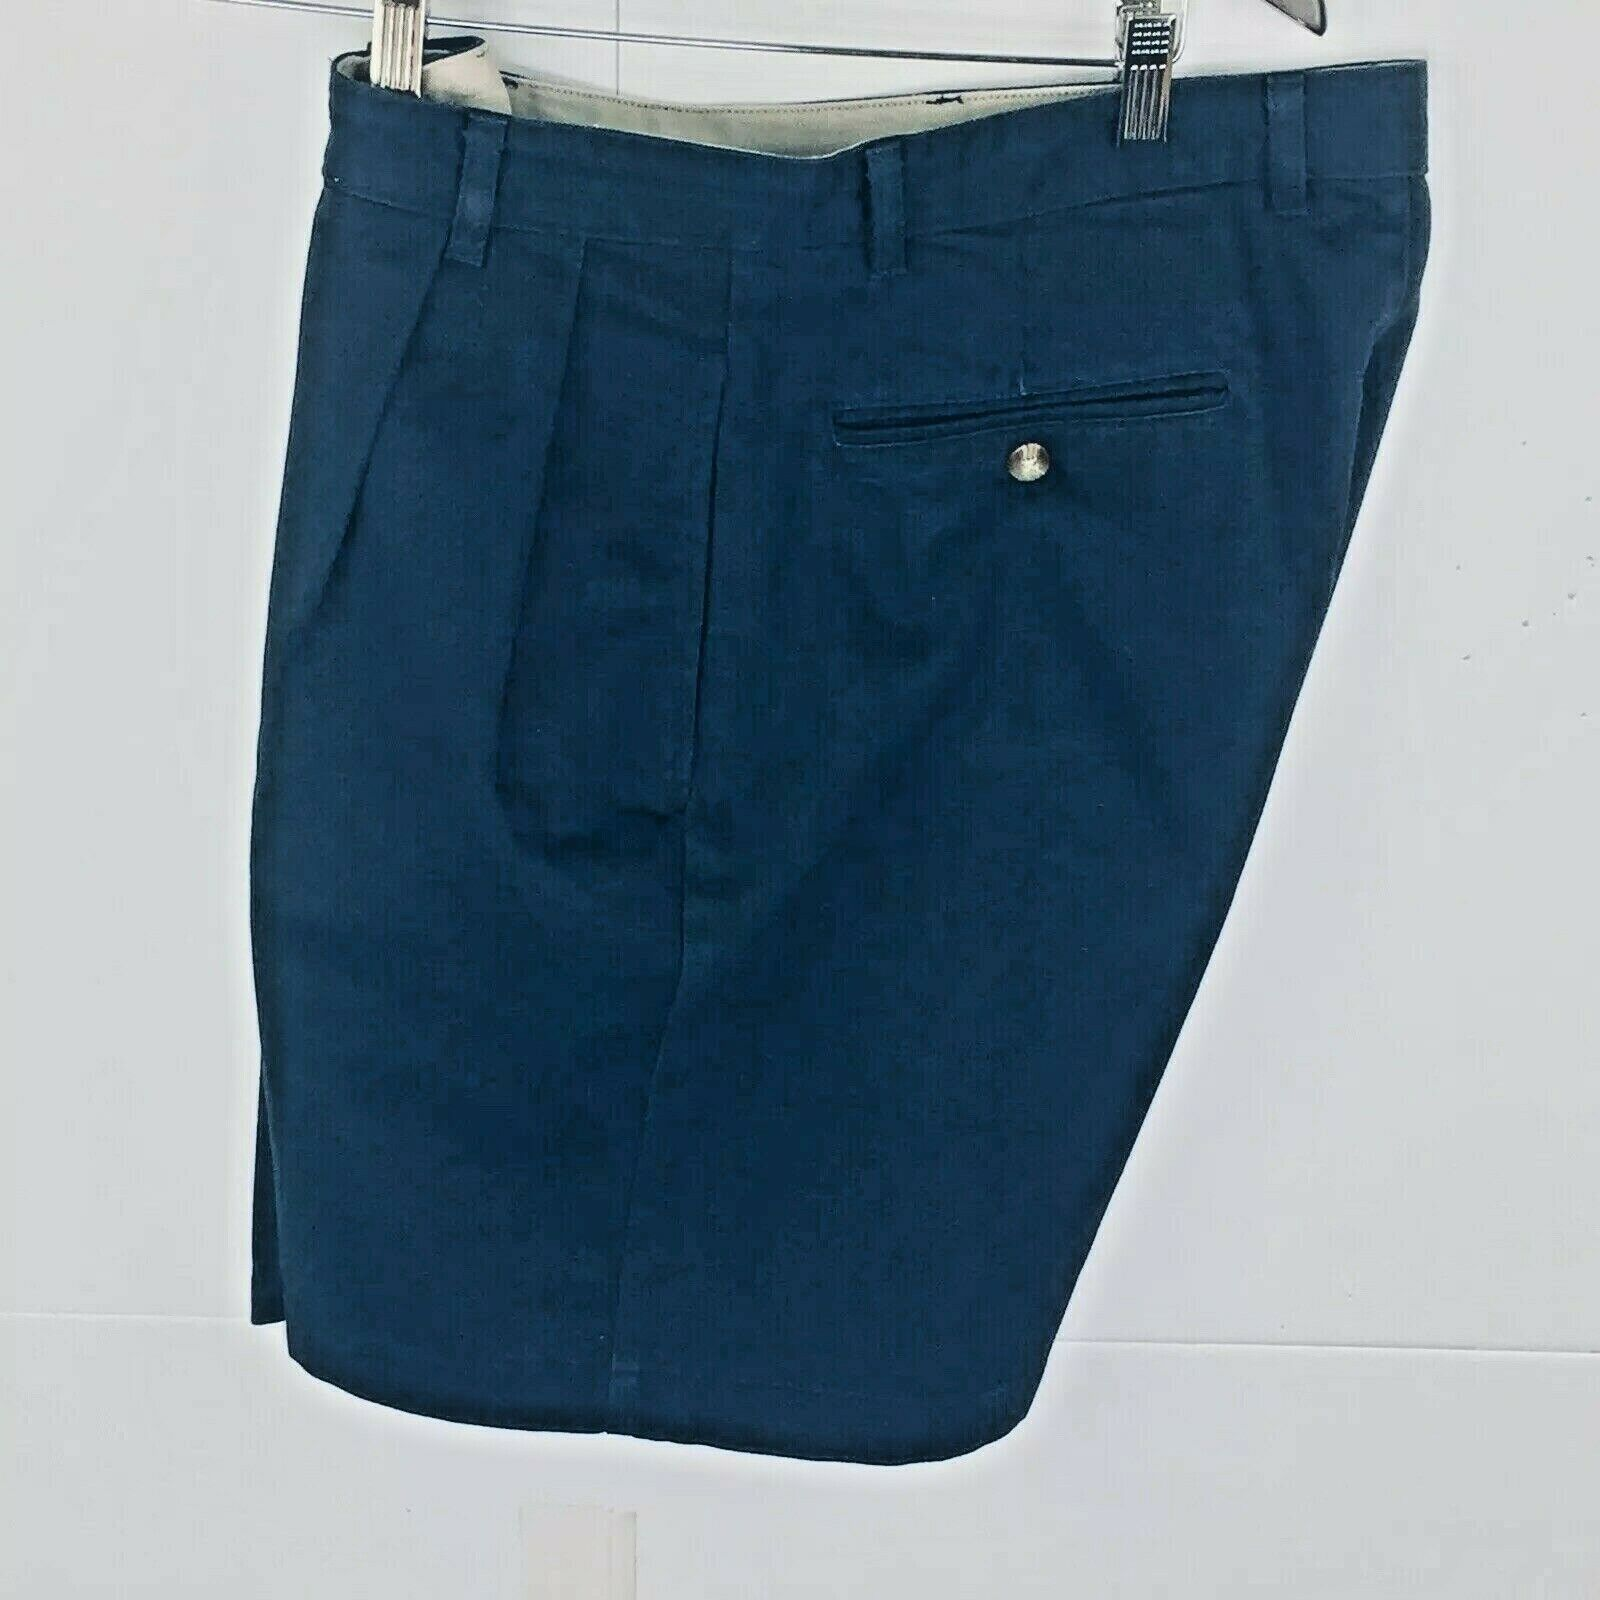 Roundtree and York Mens Shorts size 34 Navy Blue Cotton Pleated Front